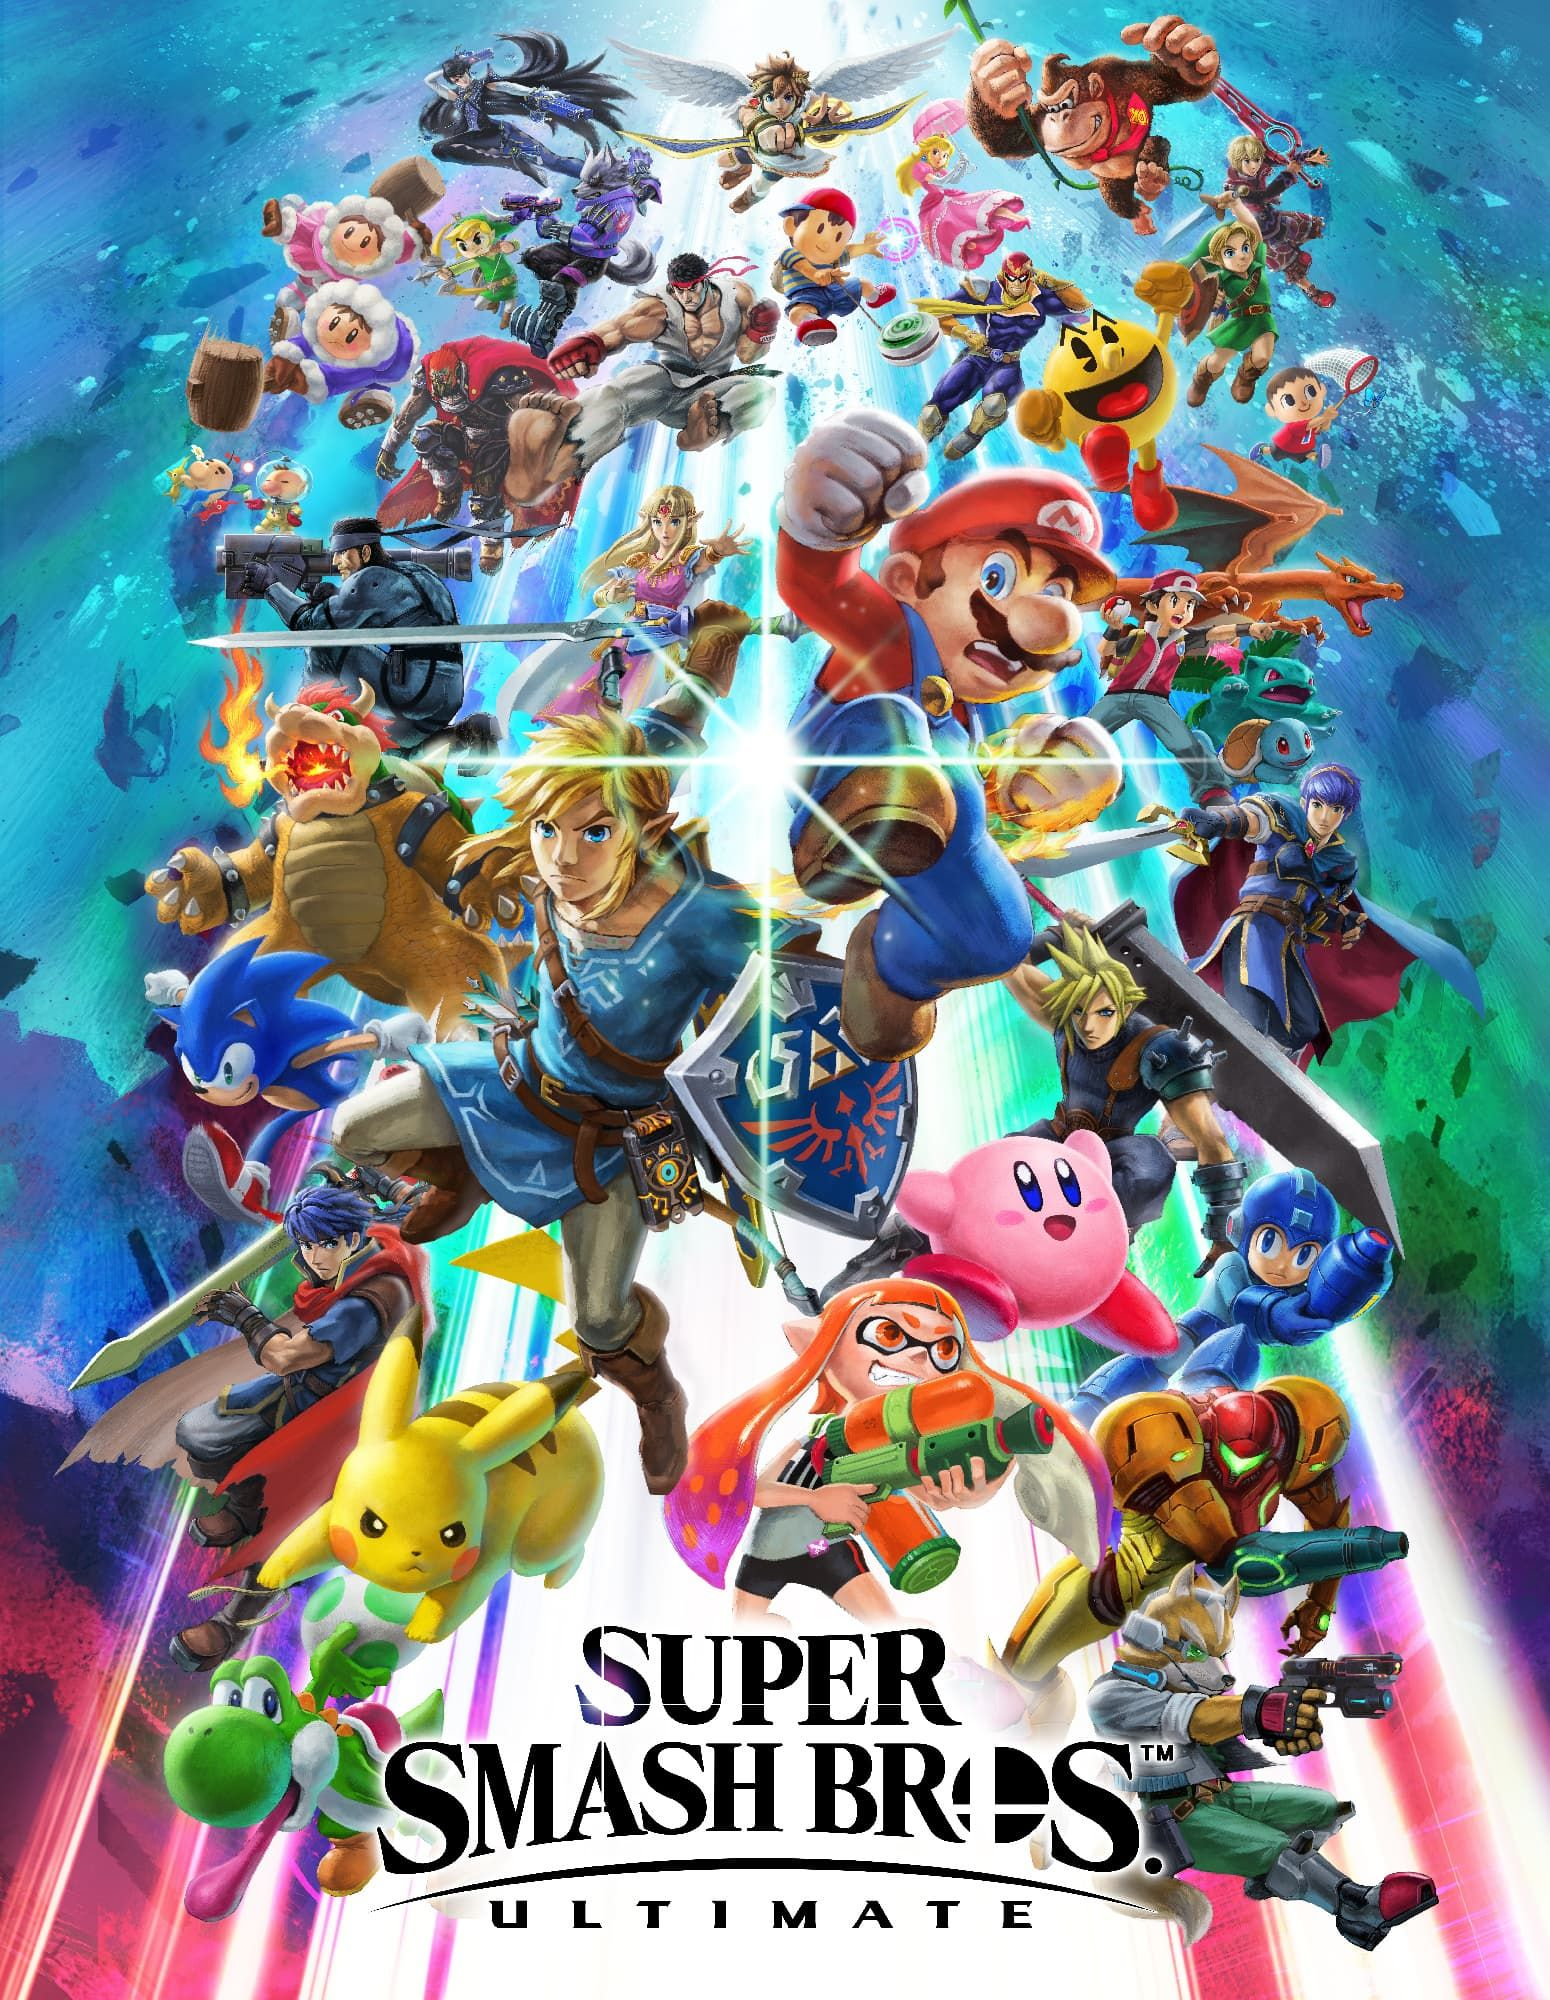 super smash bros ultimate box art super smash bros pinterest